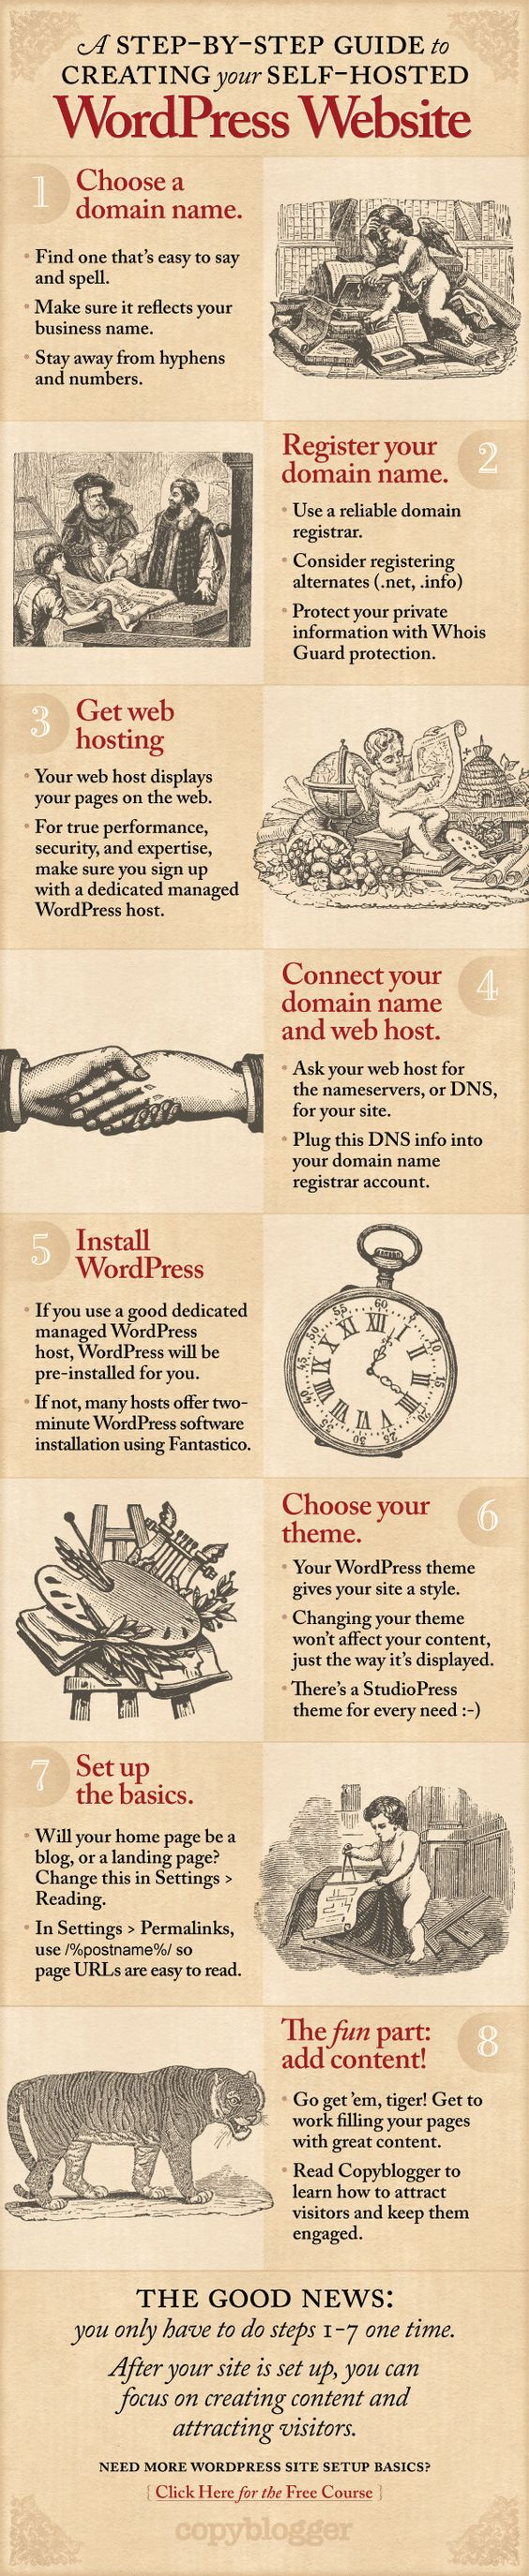 A Step-by-Step Guide to Creating Your Self-Hosted WordPress Website - Infographic